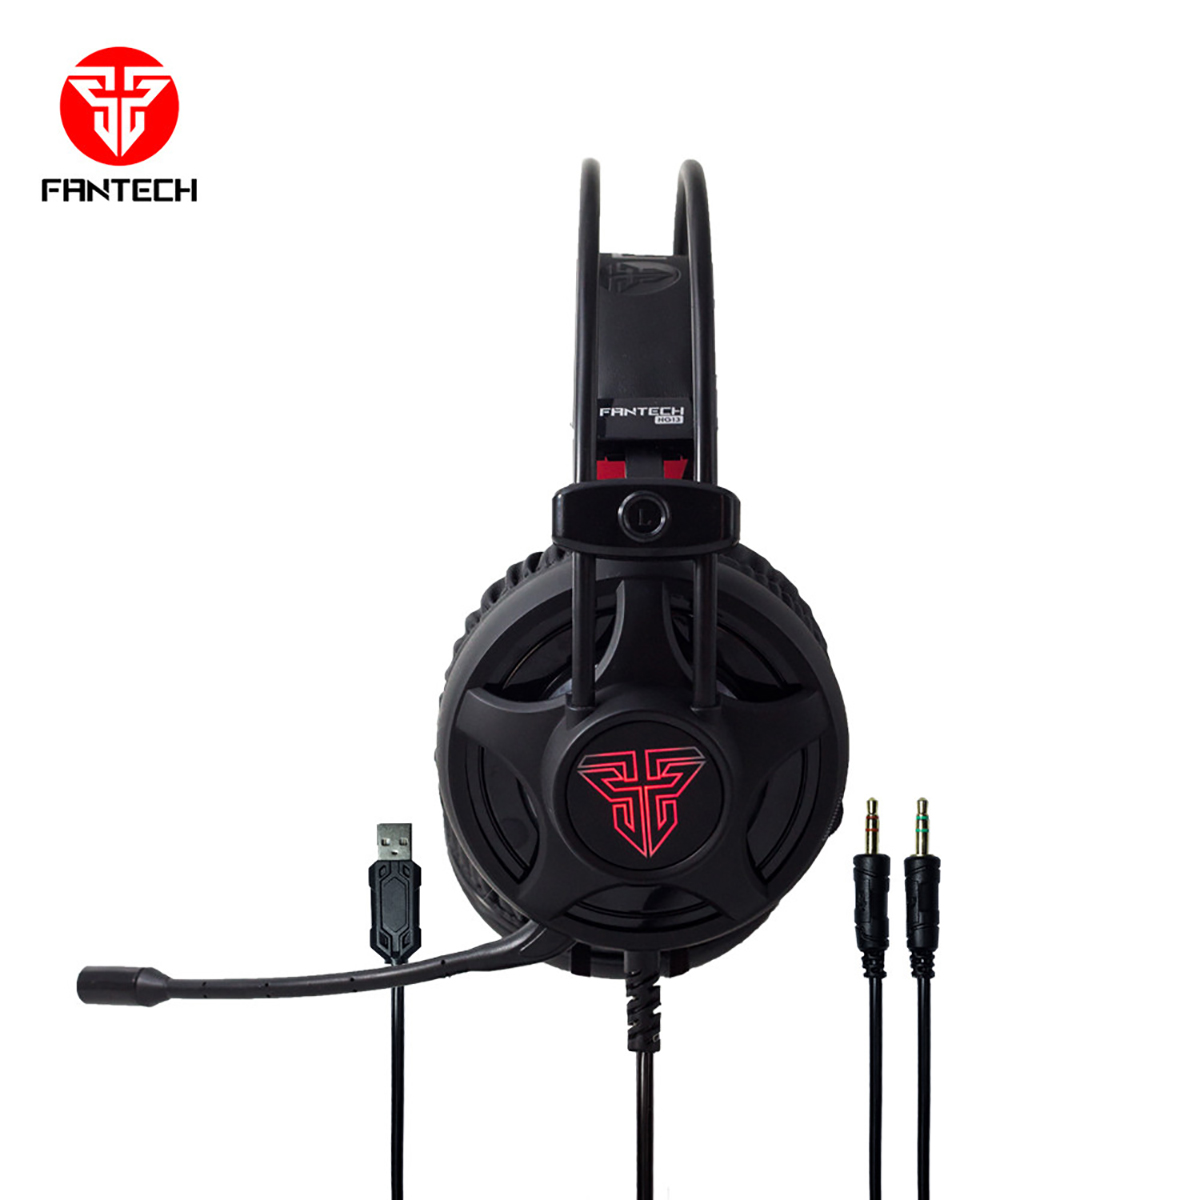 Fantech HG13 Wired Black Gaming Headphone